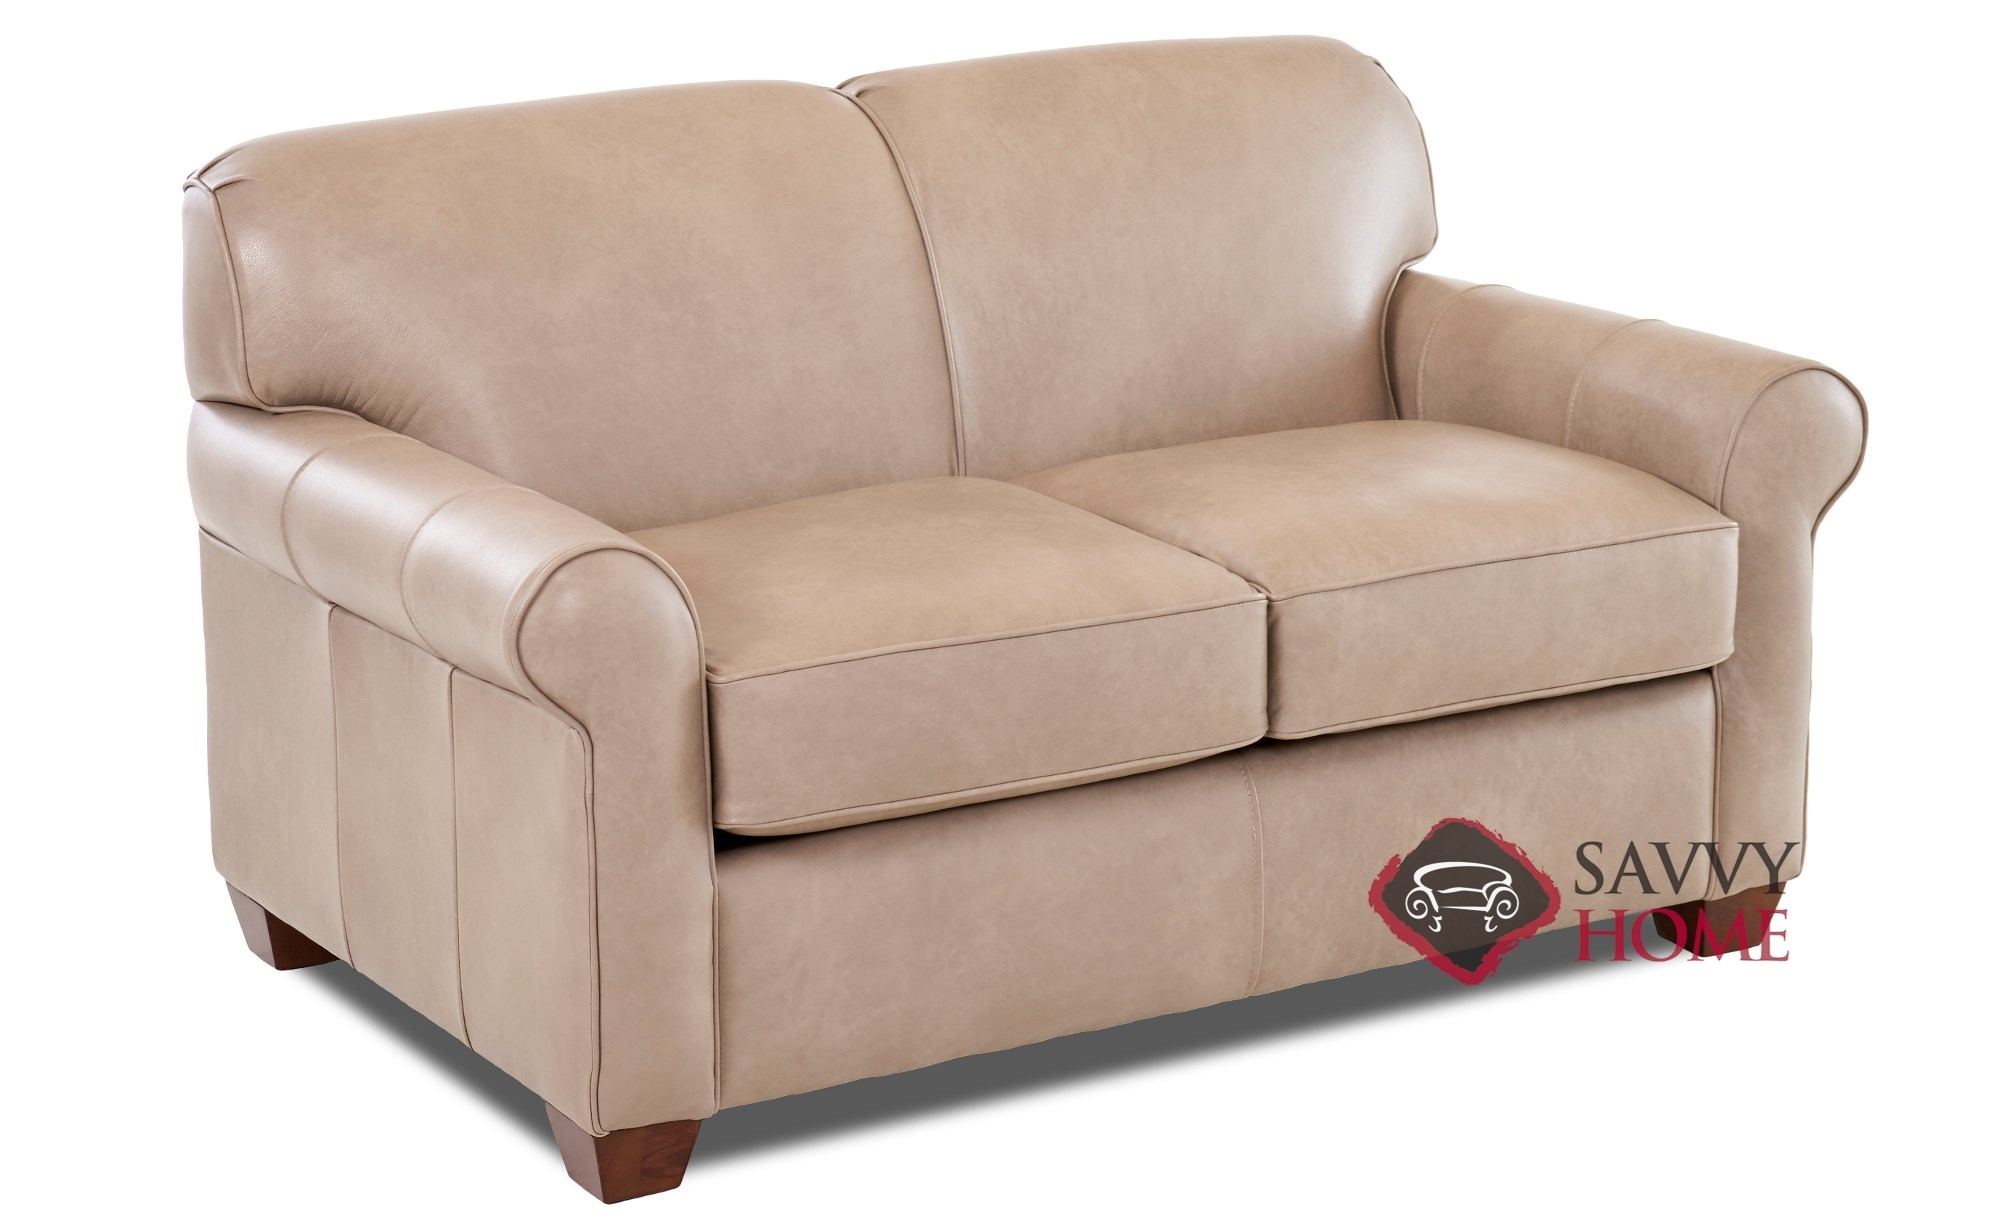 Affordable Furniture Calgary Calgary Leather Sleeper Sofas Twin By Savvy Is Fully